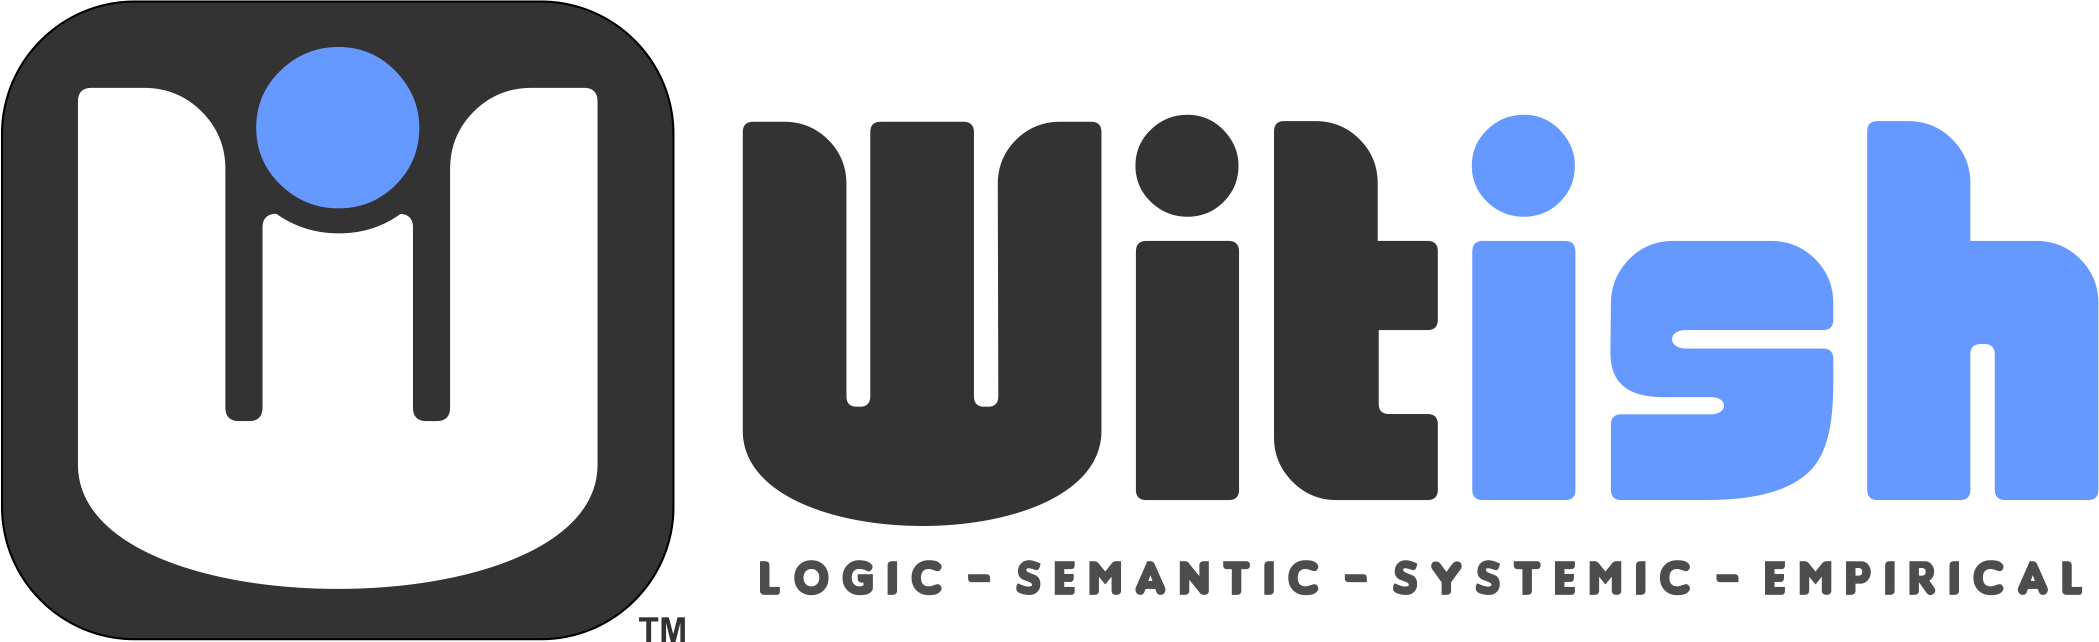 WITISH LOGO 6